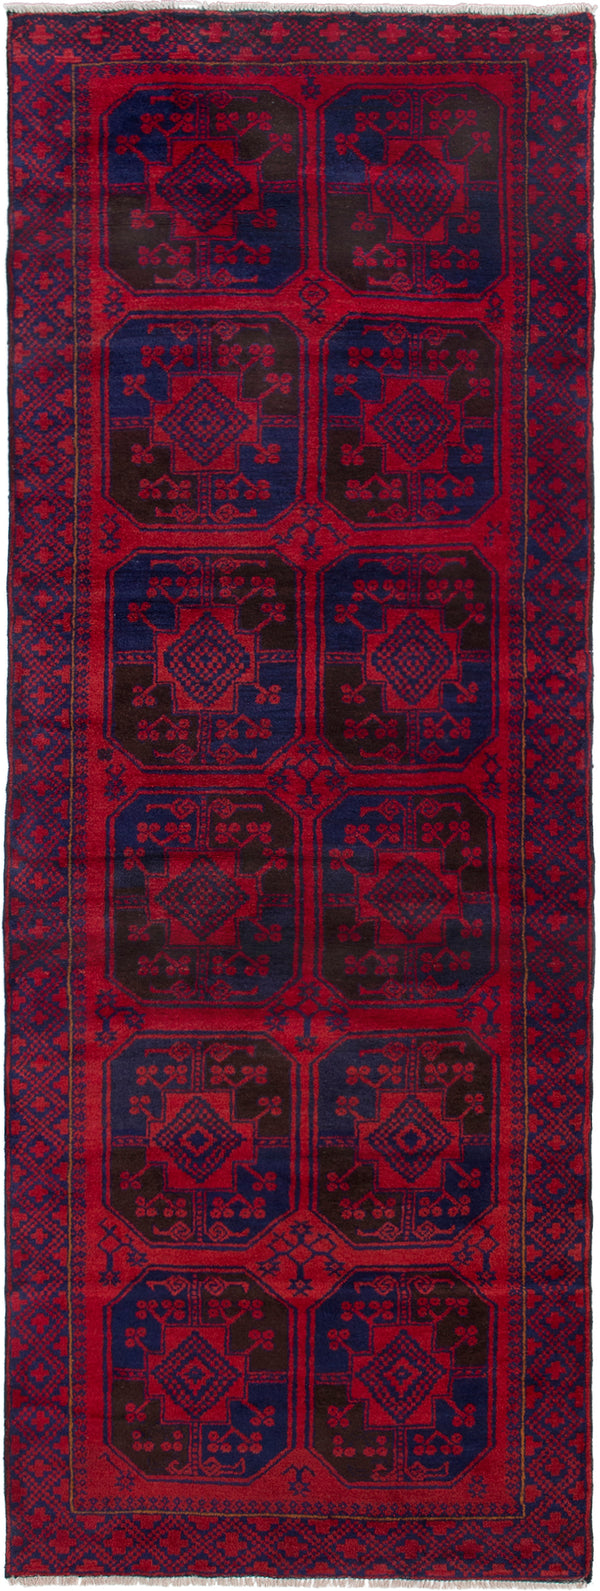 Hand-knotted Afghan Bordered  Tribal Teimani Runner rug  Red 3.5 x 9.1